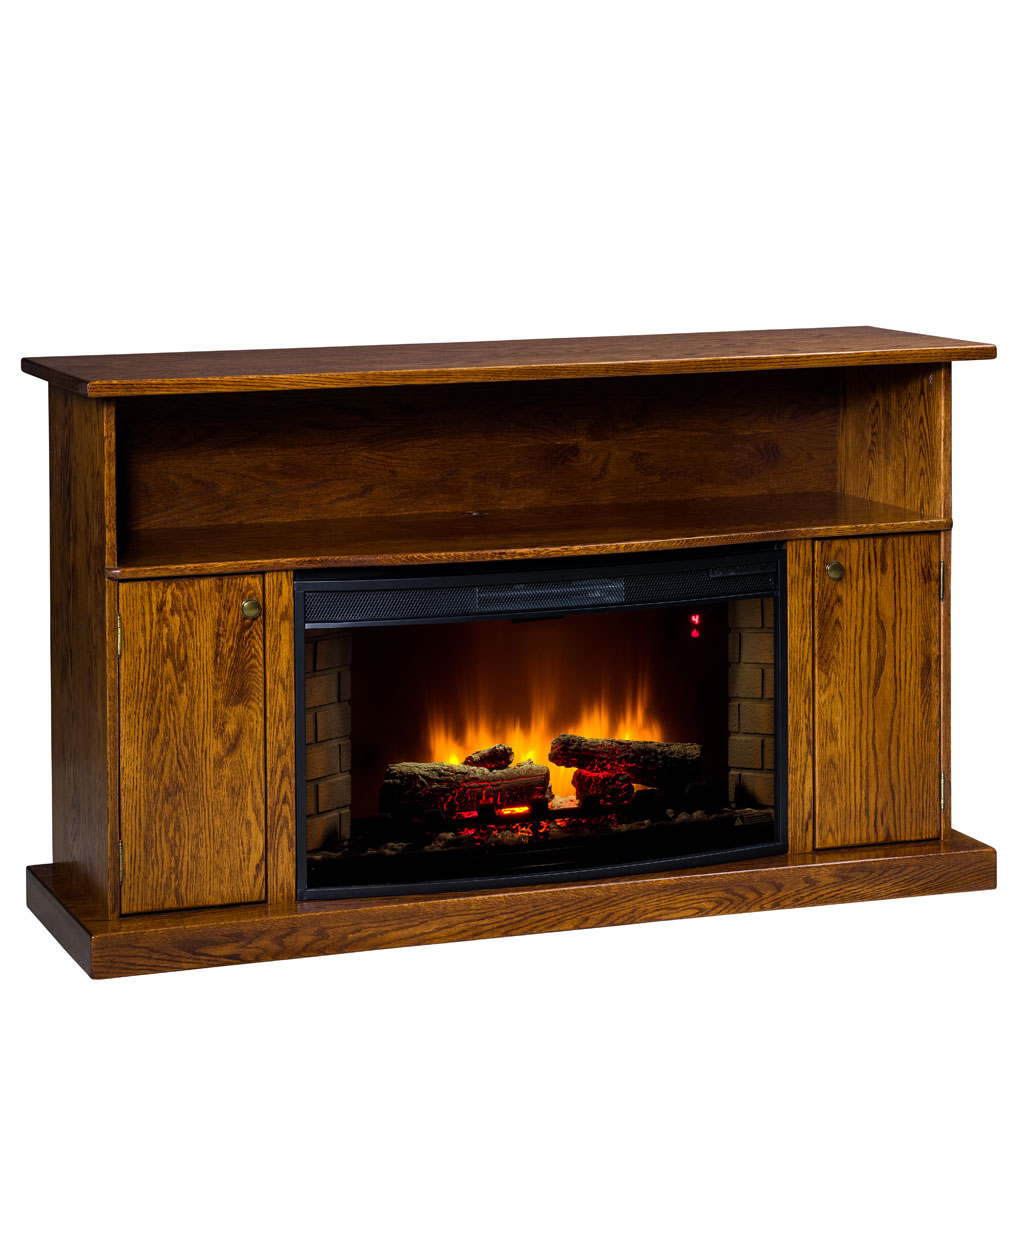 Cheyenne Series Tv Stand With Space Heater 302 Amish